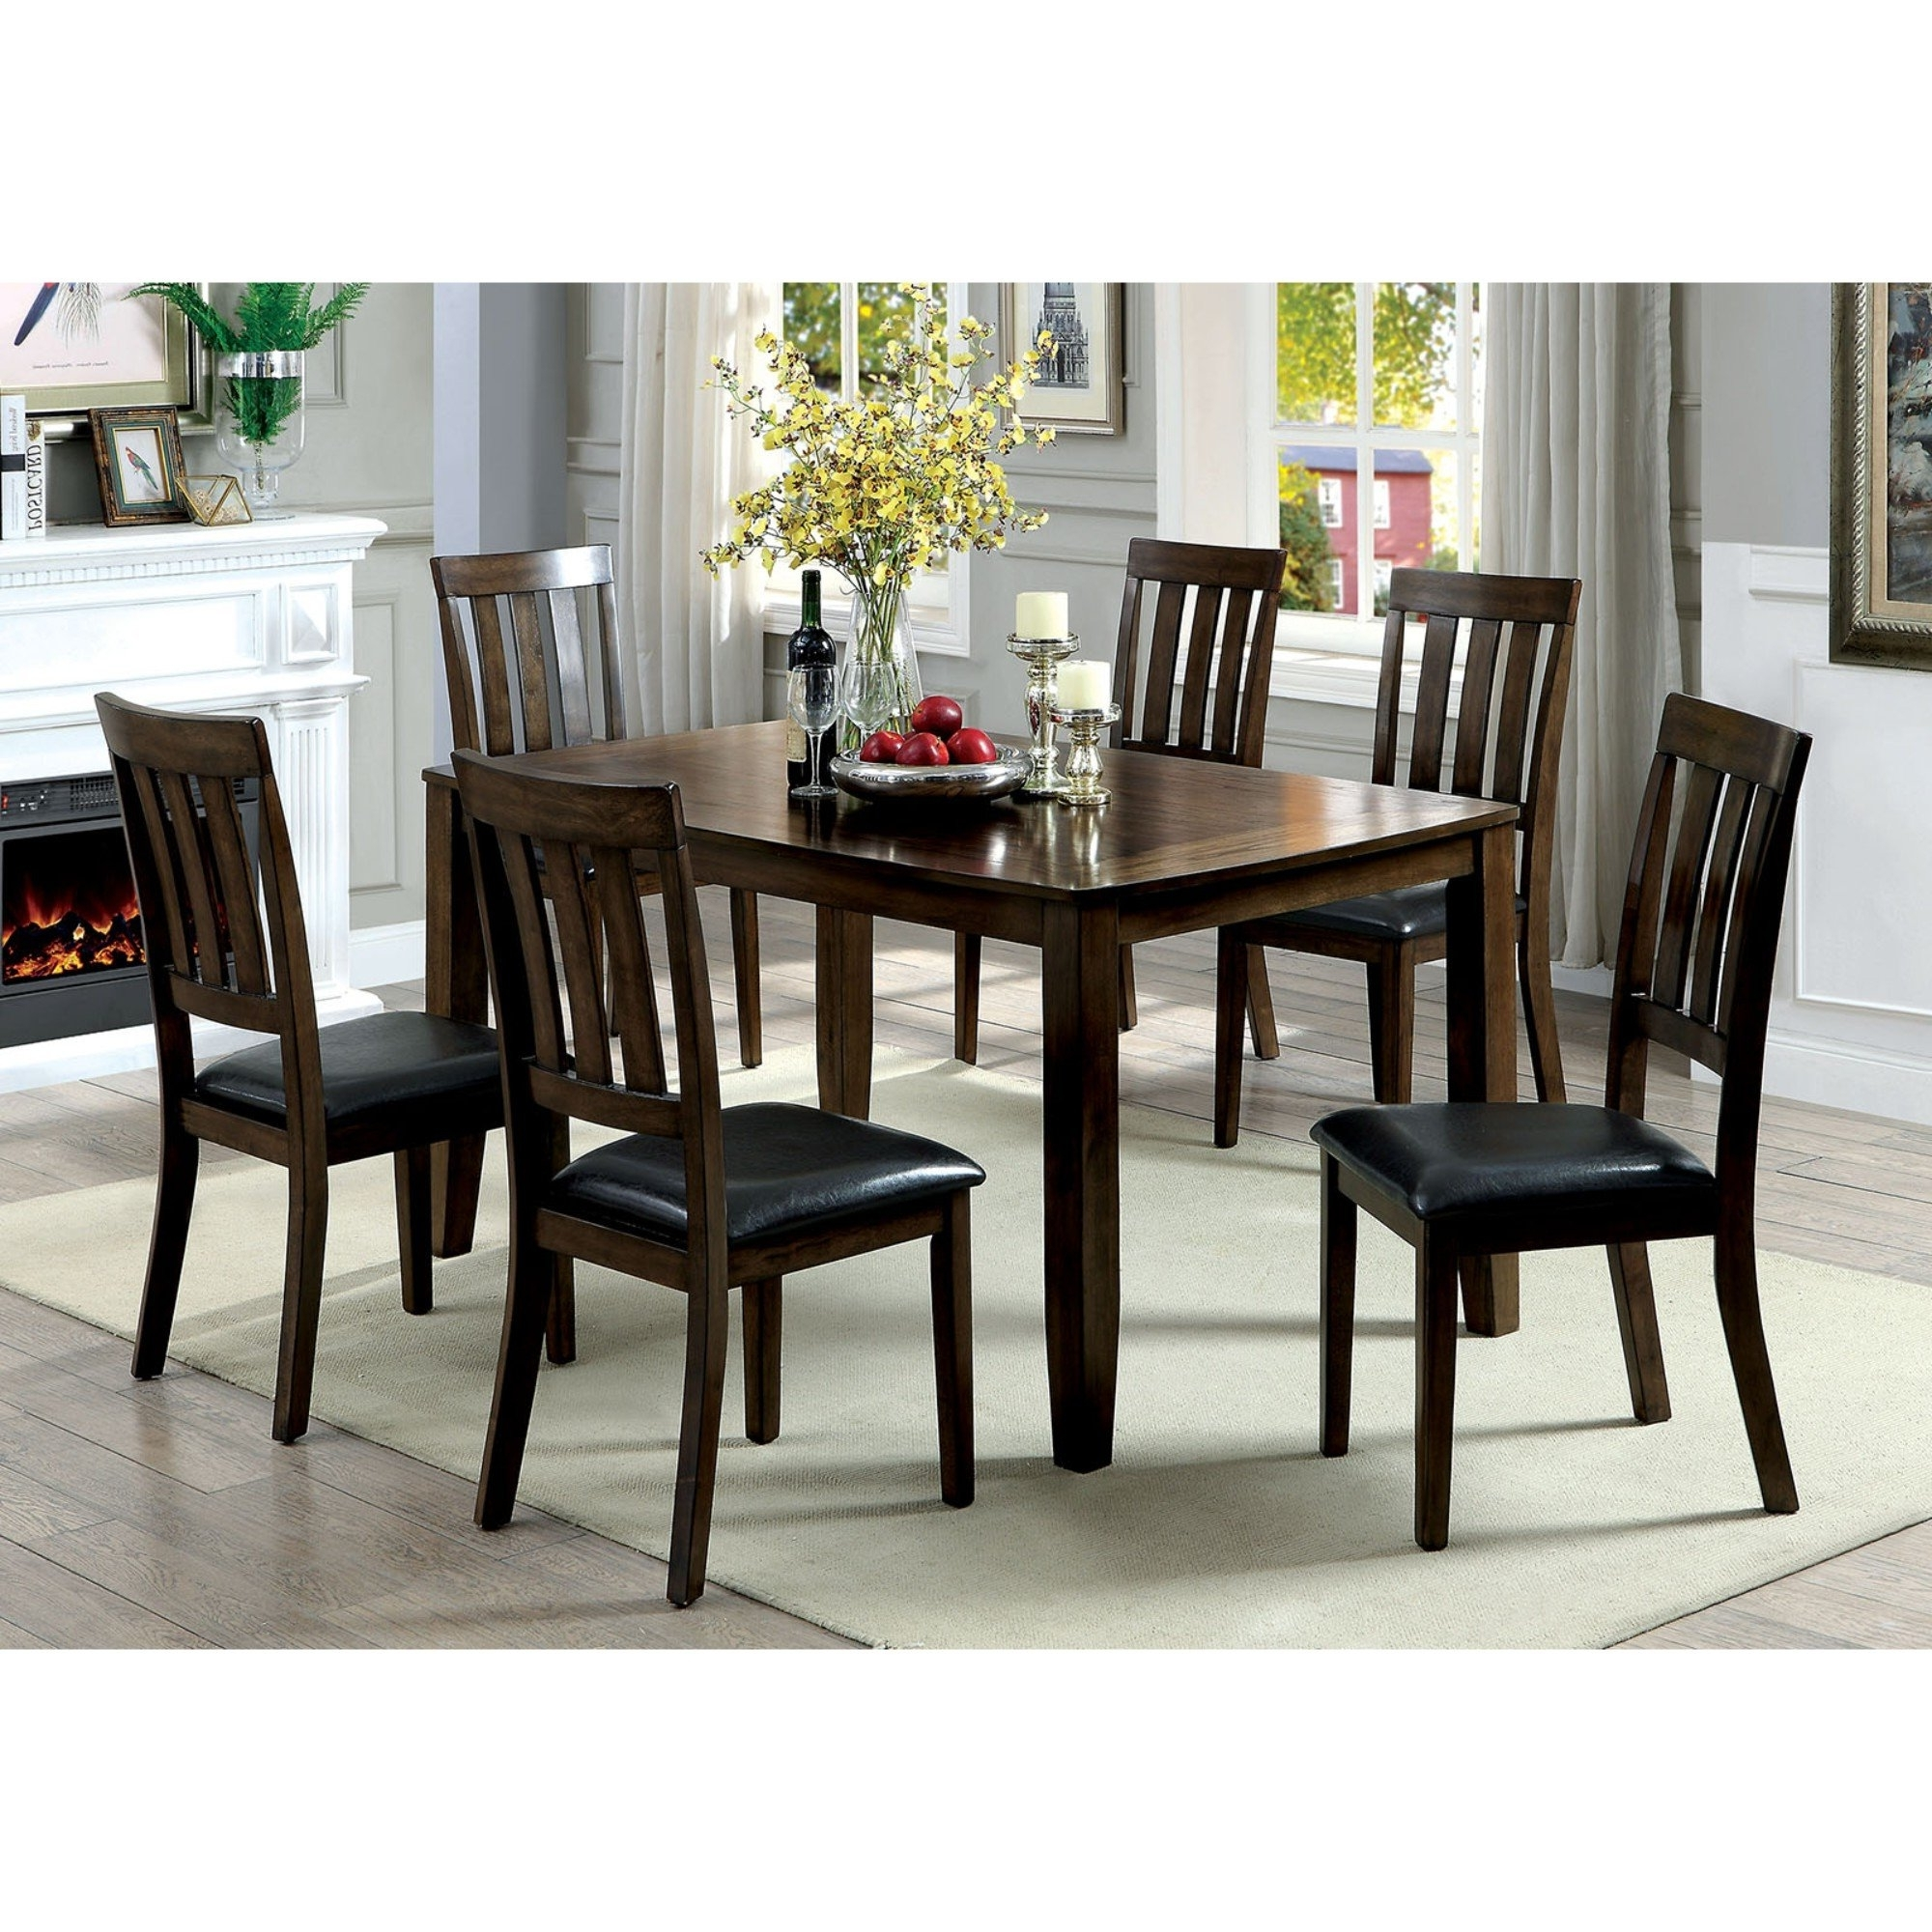 Most Popular Millwood Pines Devon Wooden 7 Piece Counter Height Dining Table Set For Candice Ii 5 Piece Round Dining Sets With Slat Back Side Chairs (View 6 of 25)